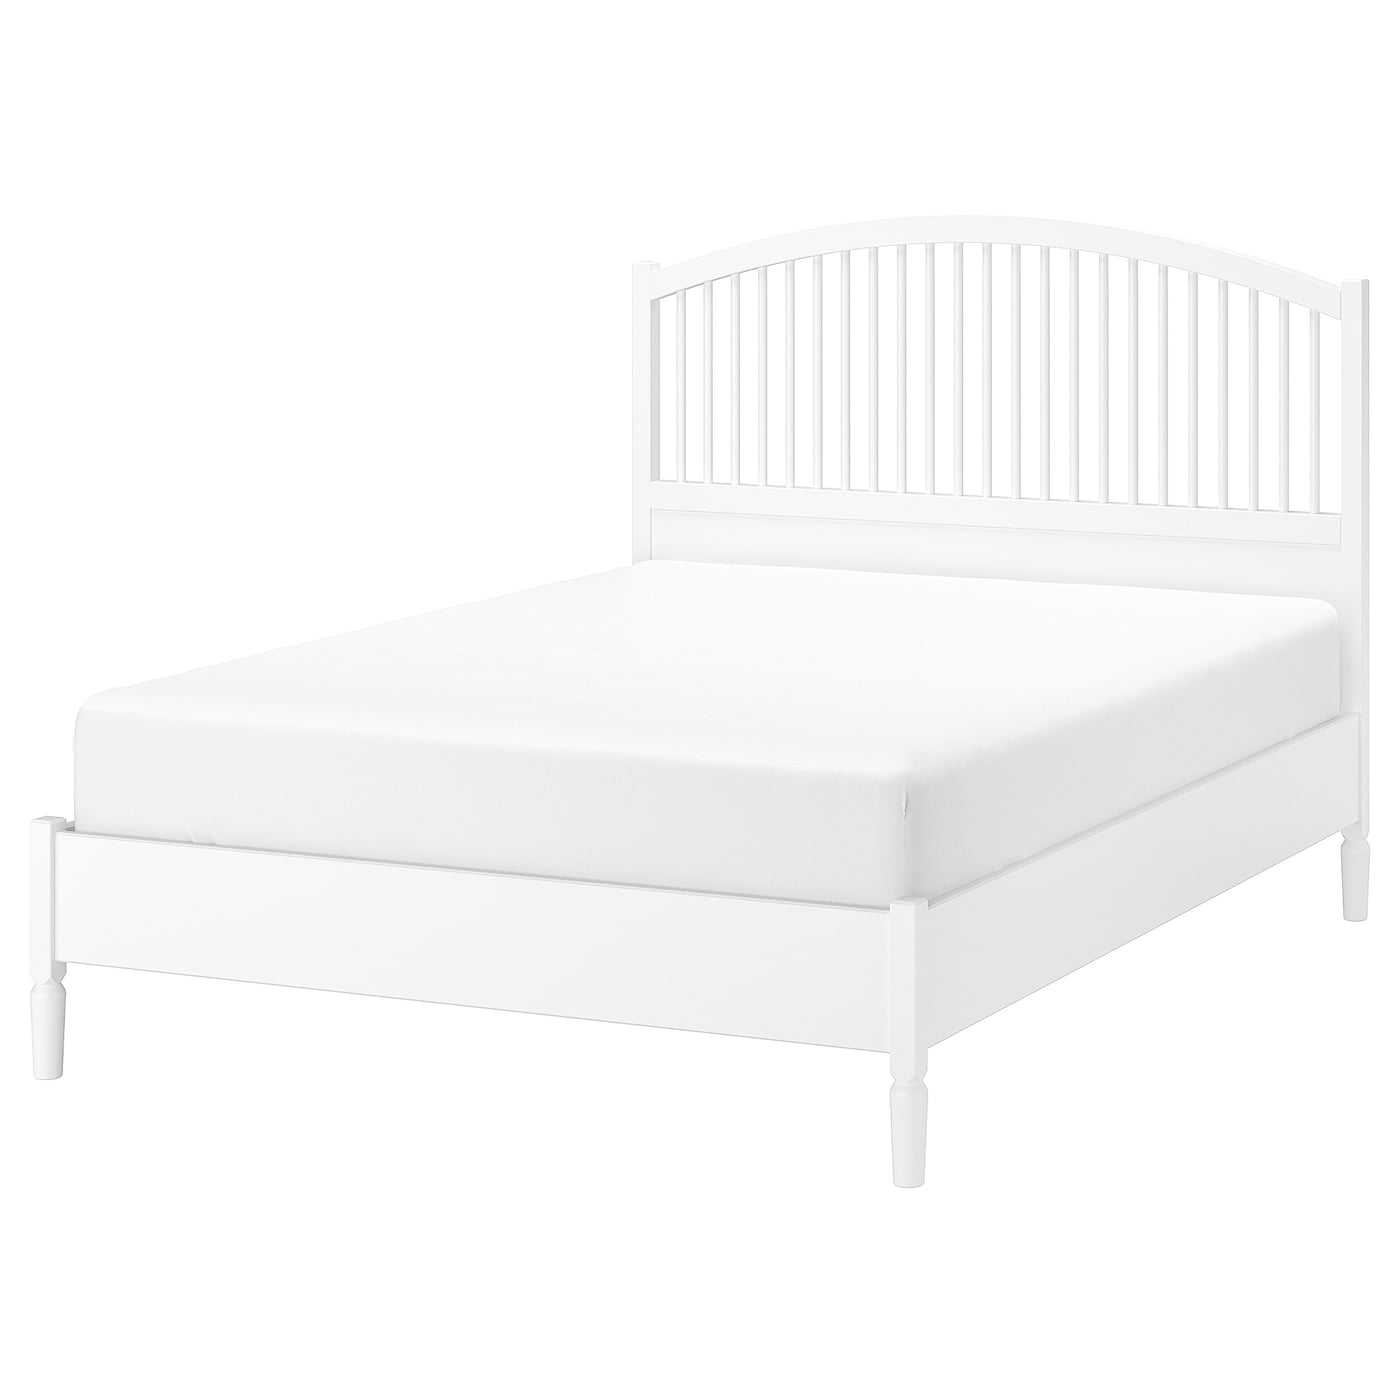 IKEA TYSSEDAL bed frame Adjustable bed sides allow you to use mattresses of different thicknesses.